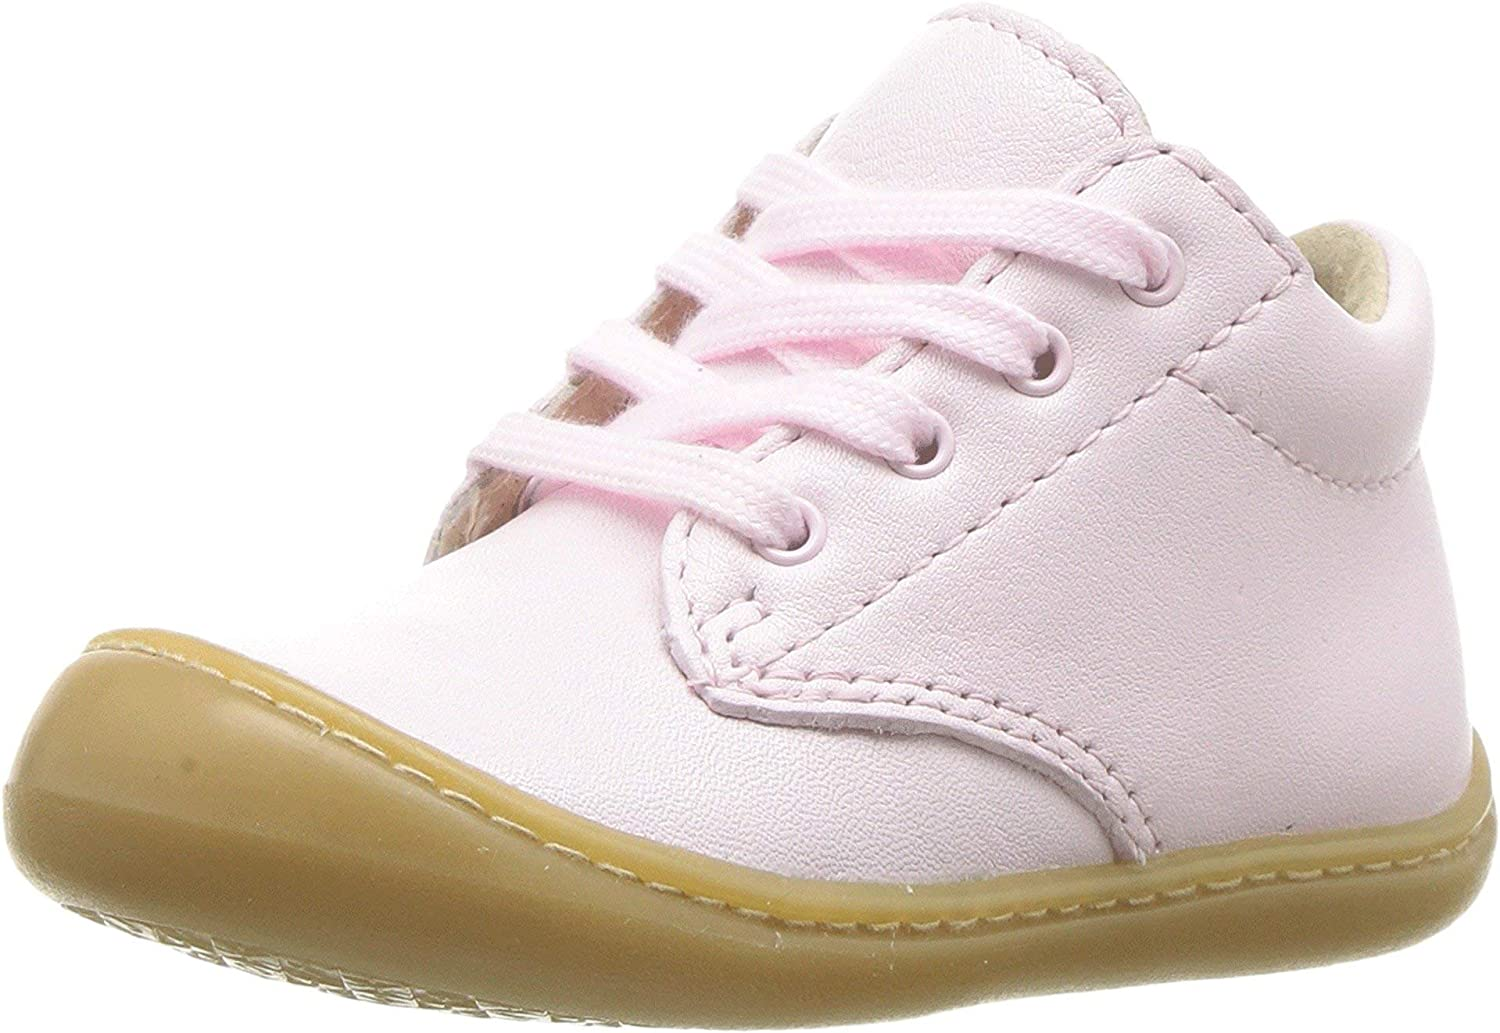 FOOTMATES Reagan Soft Laceup First Walker Rose Nappa 5003